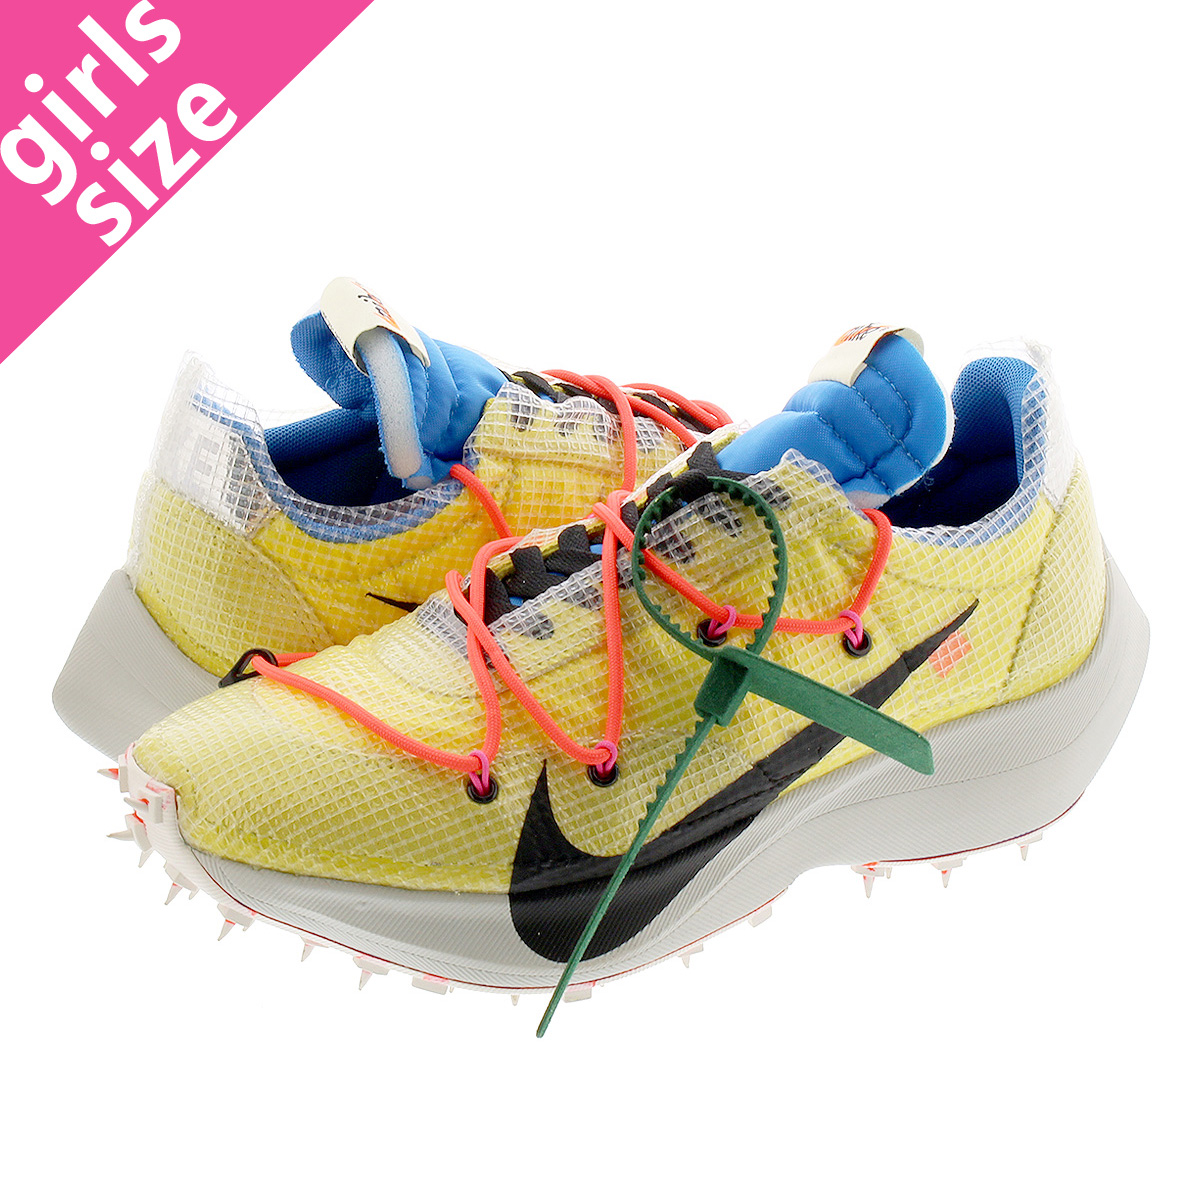 NIKE WMNS VAPOR STREET 【OFF-WHITE】 ナイキ ウィメンズ ヴェイパー ストリート TOUR YELLOW/BLACK/LIGHT BONE cd8178-700